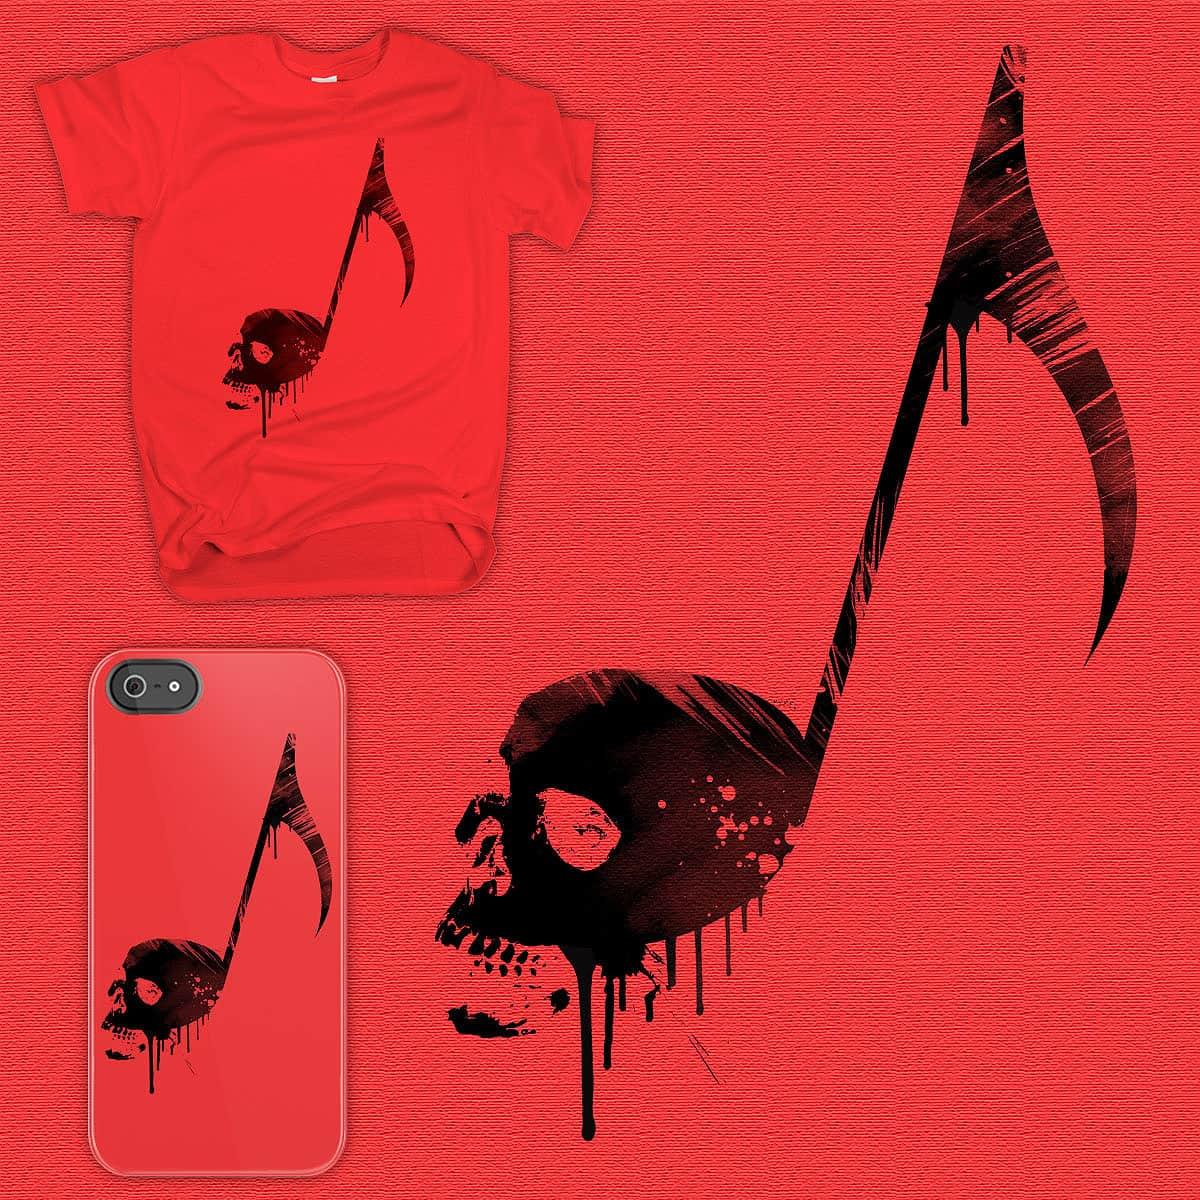 The Death Note by Agimat ni Ingkong on Threadless